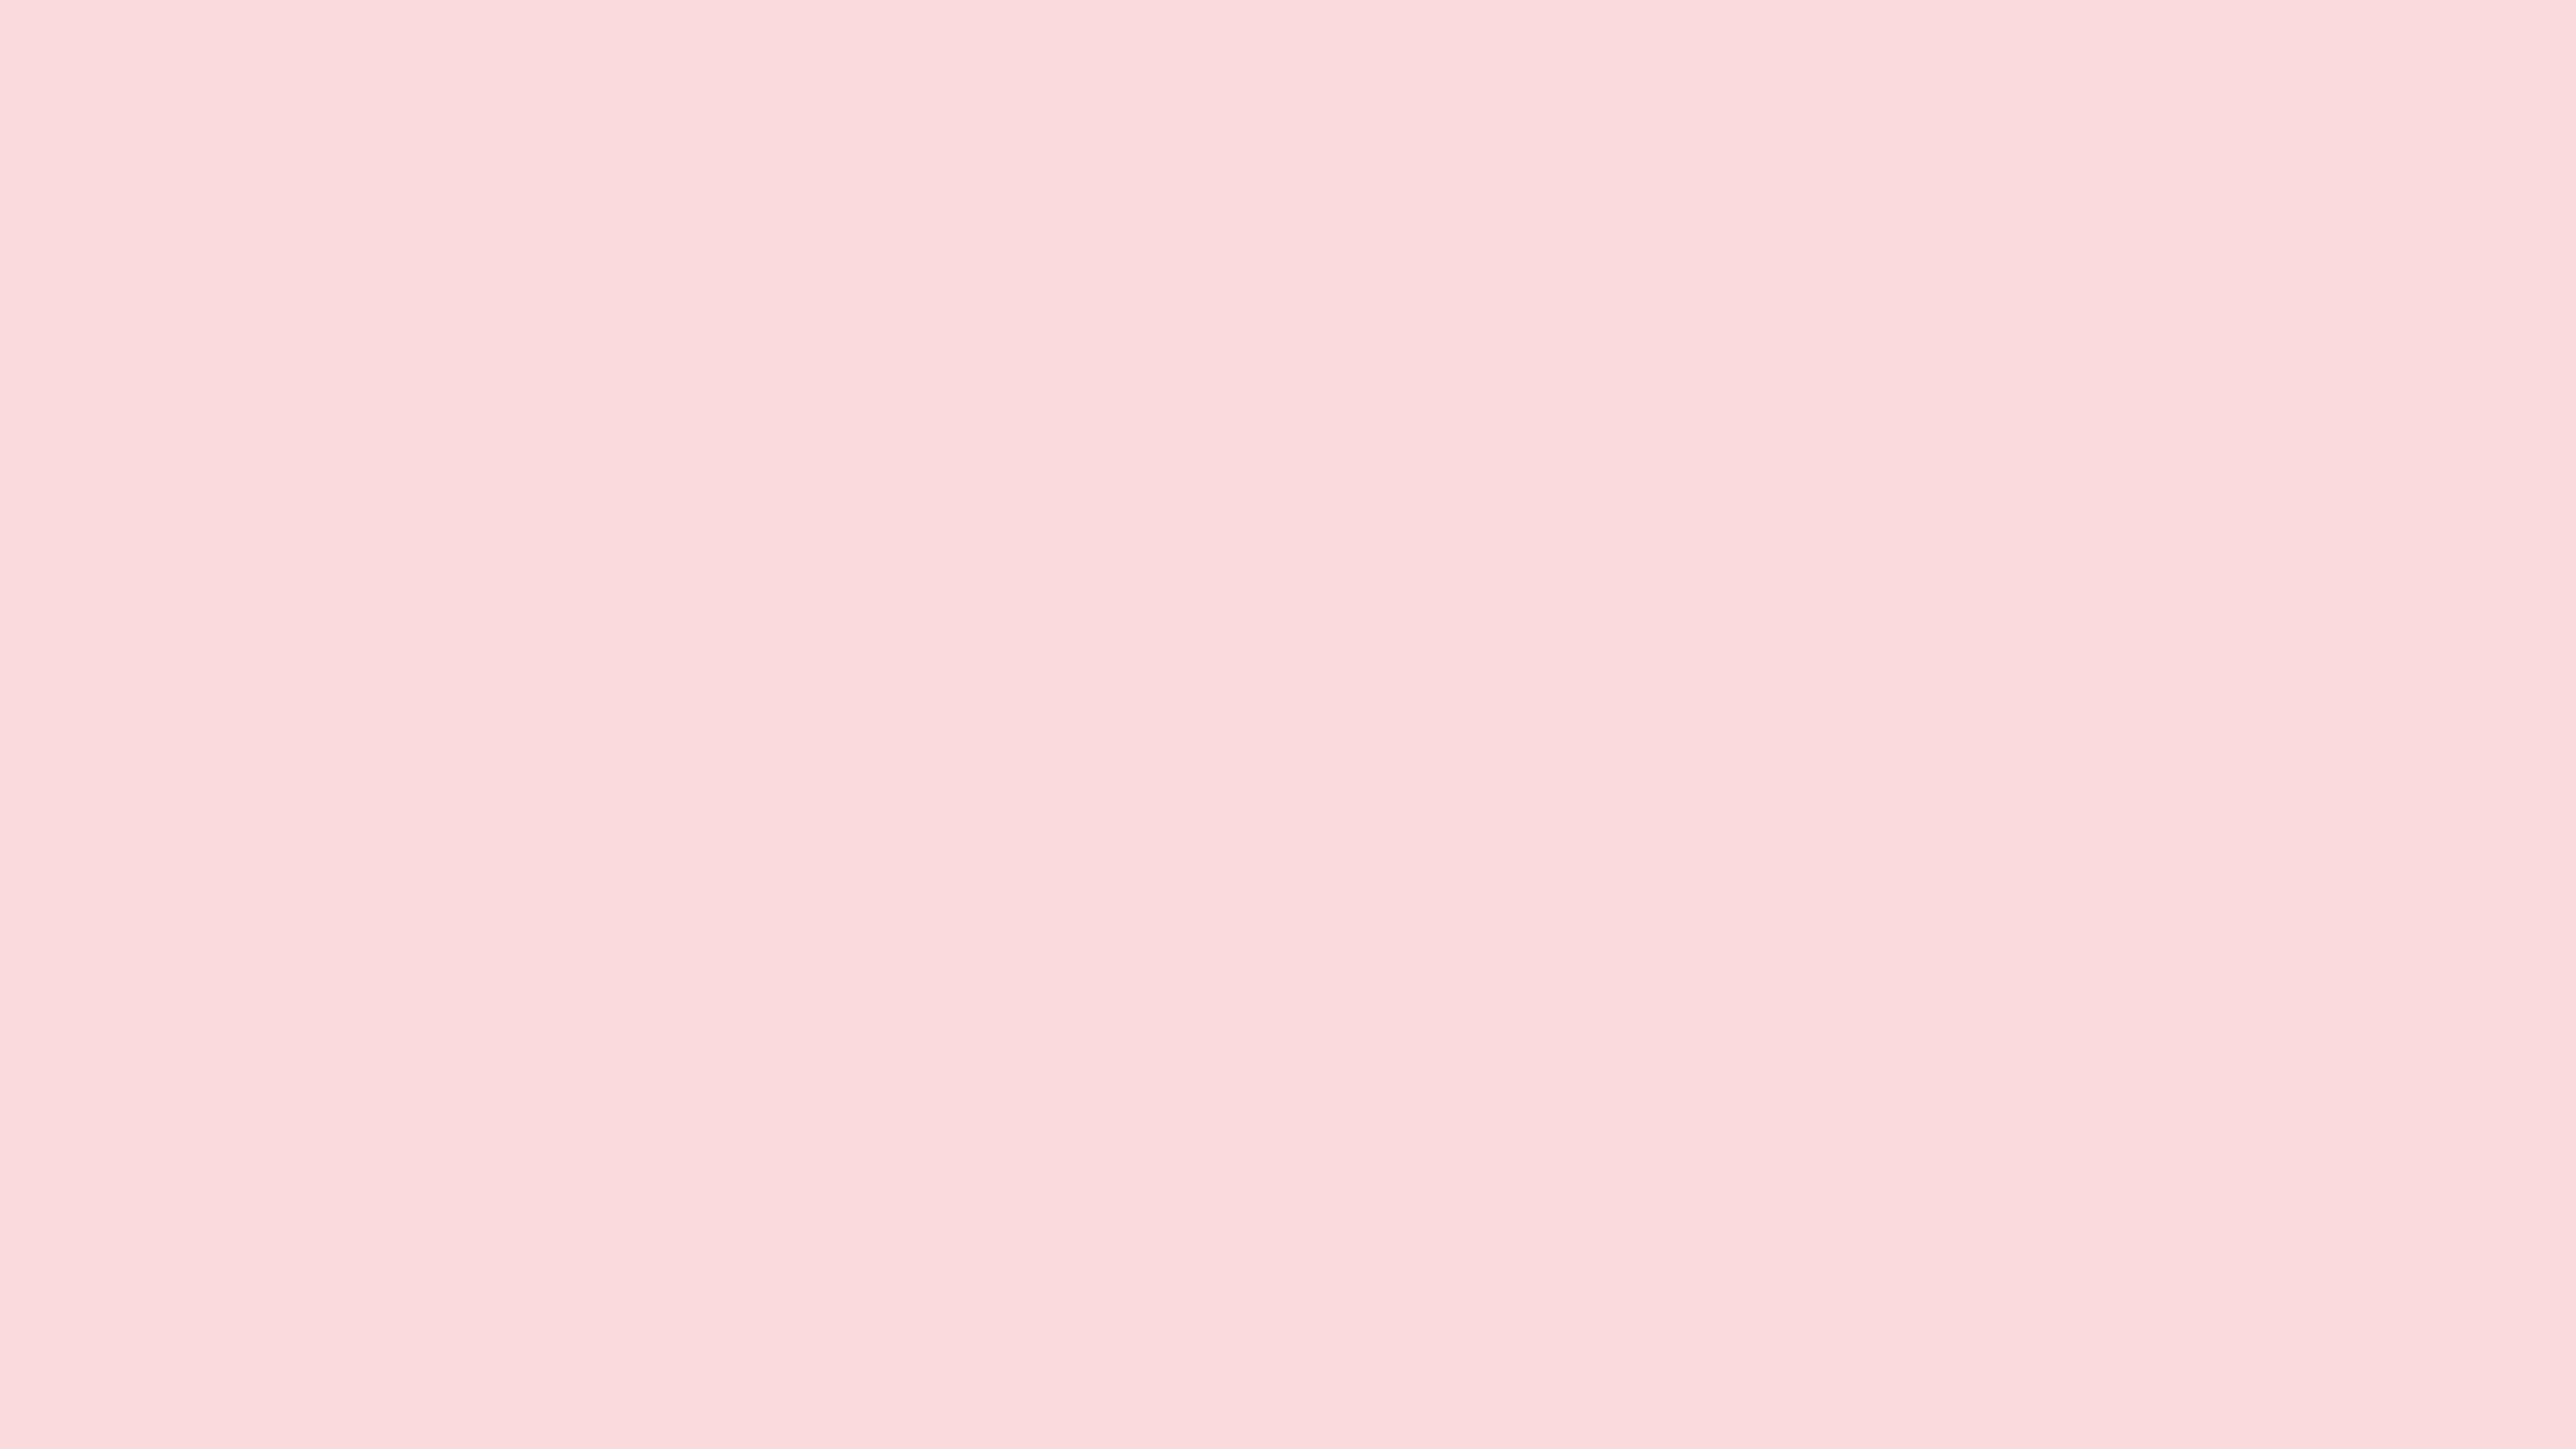 4096x2304 Pale Pink Solid Color Background